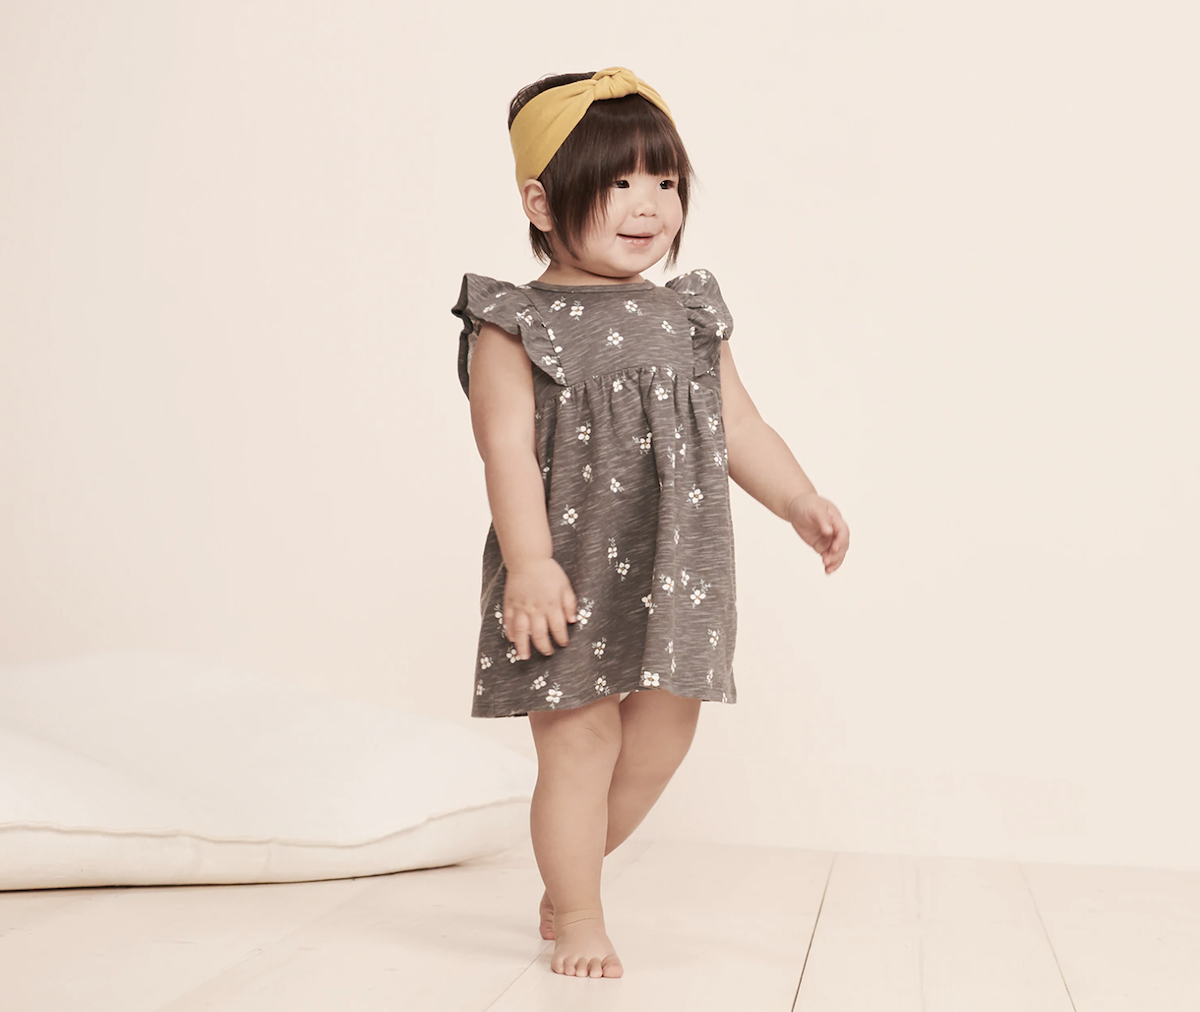 baby wearing Little Co. by Lauren Conrad Ruffle Dress & Headband Set in grey and yellow